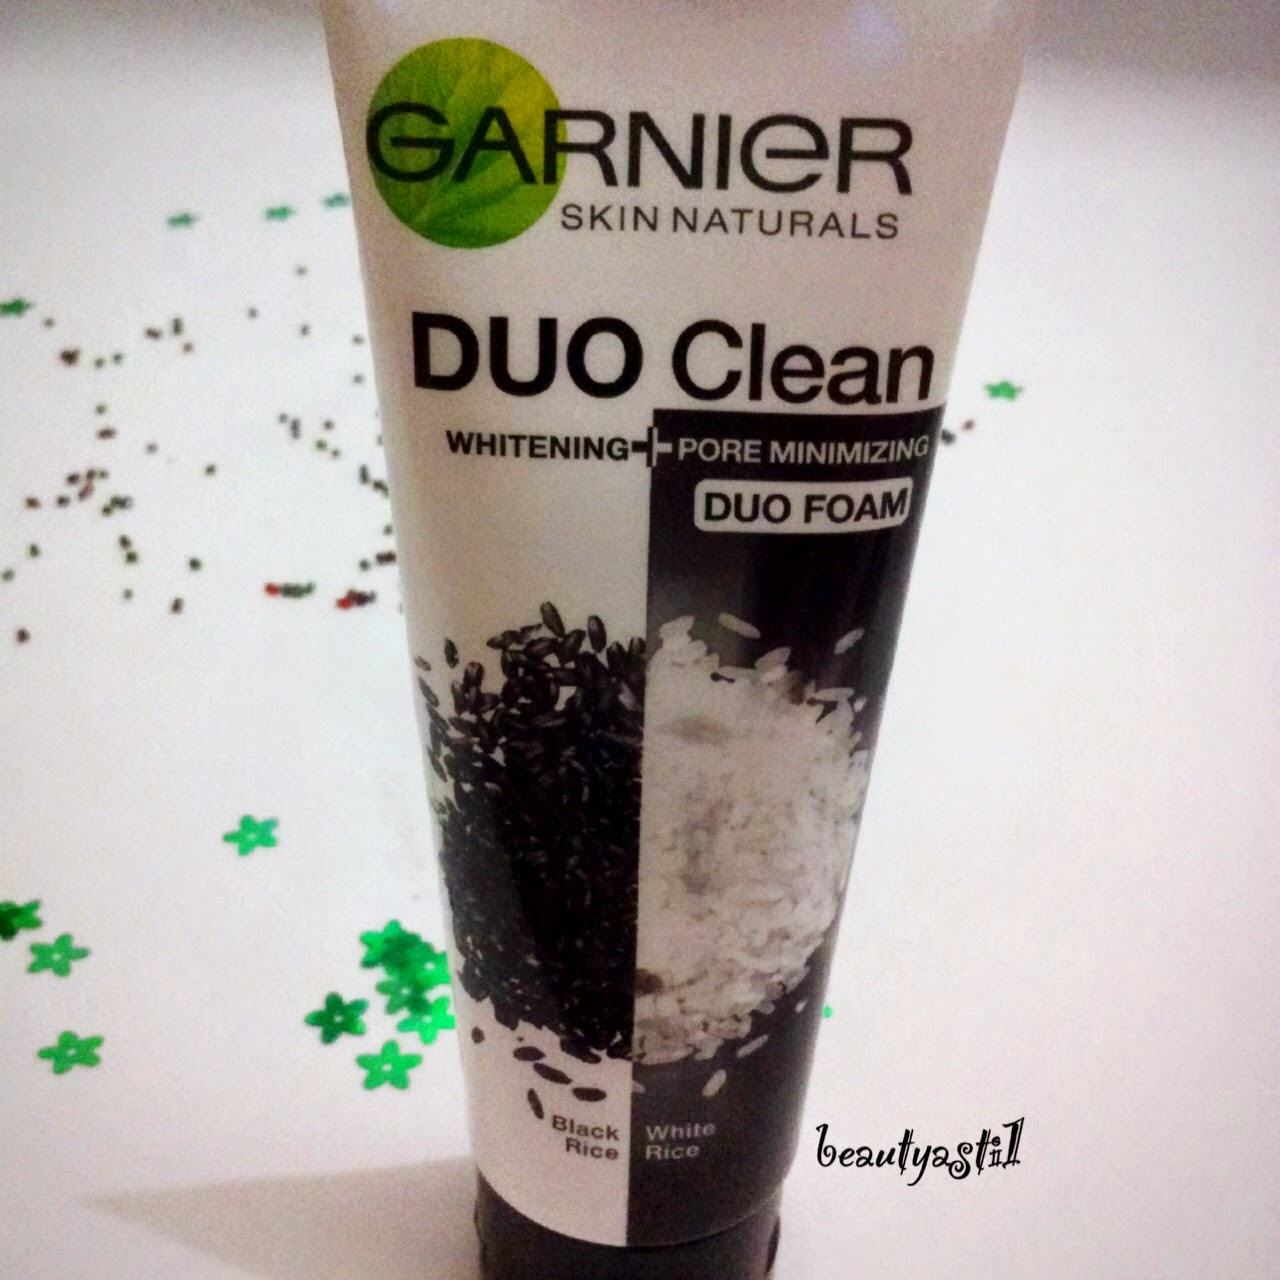 garnier-duo-clean-black-and-white-rice-extract.jpg